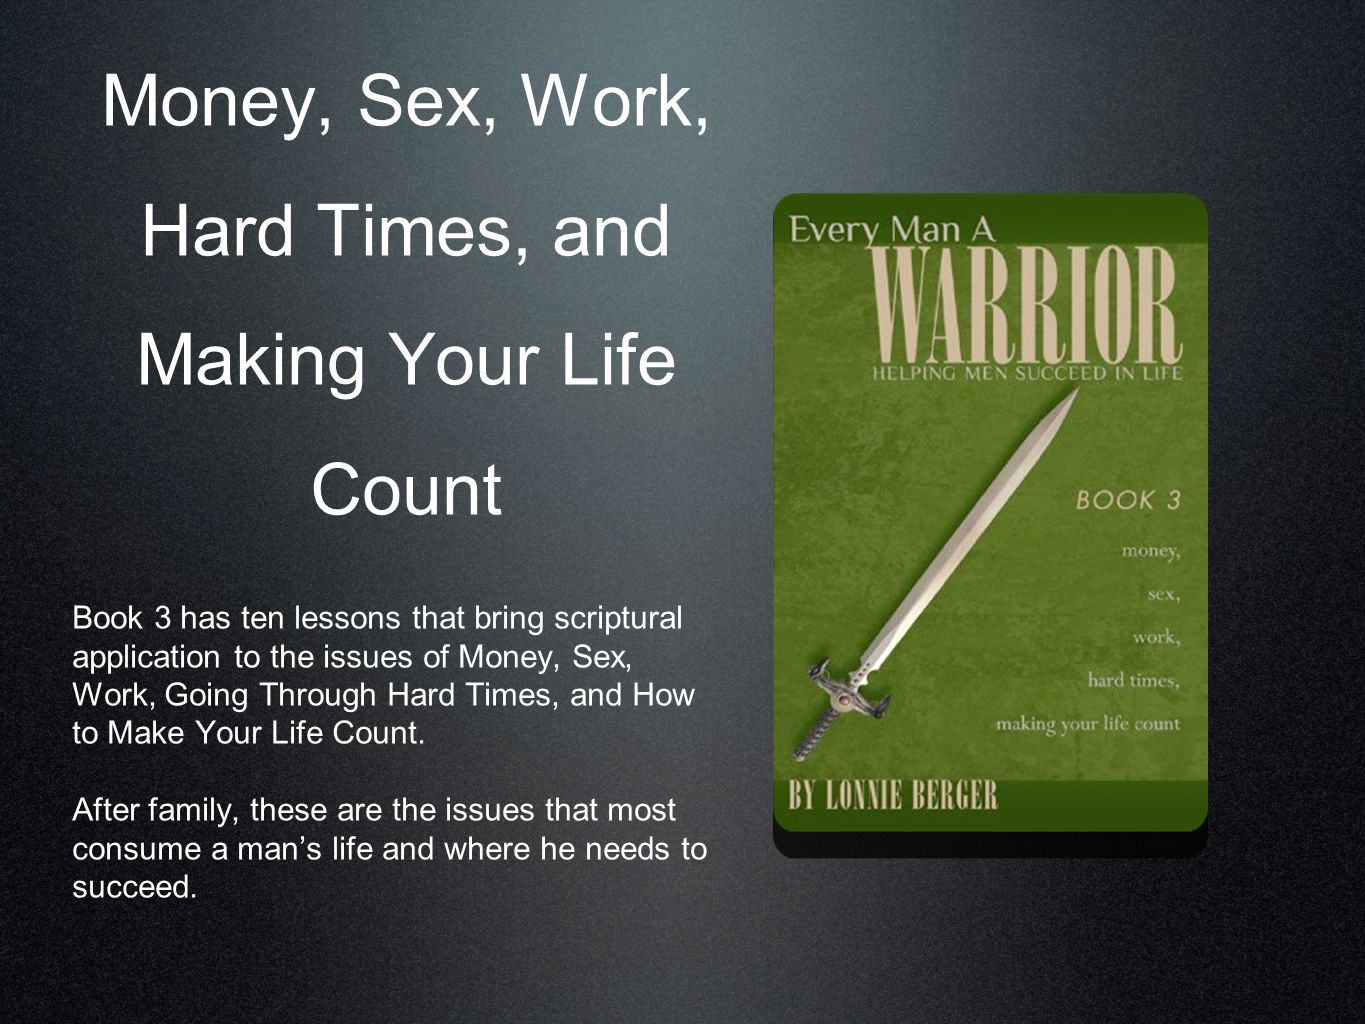 Money, Sex, Work, Hard Times, and Making Your Life Count